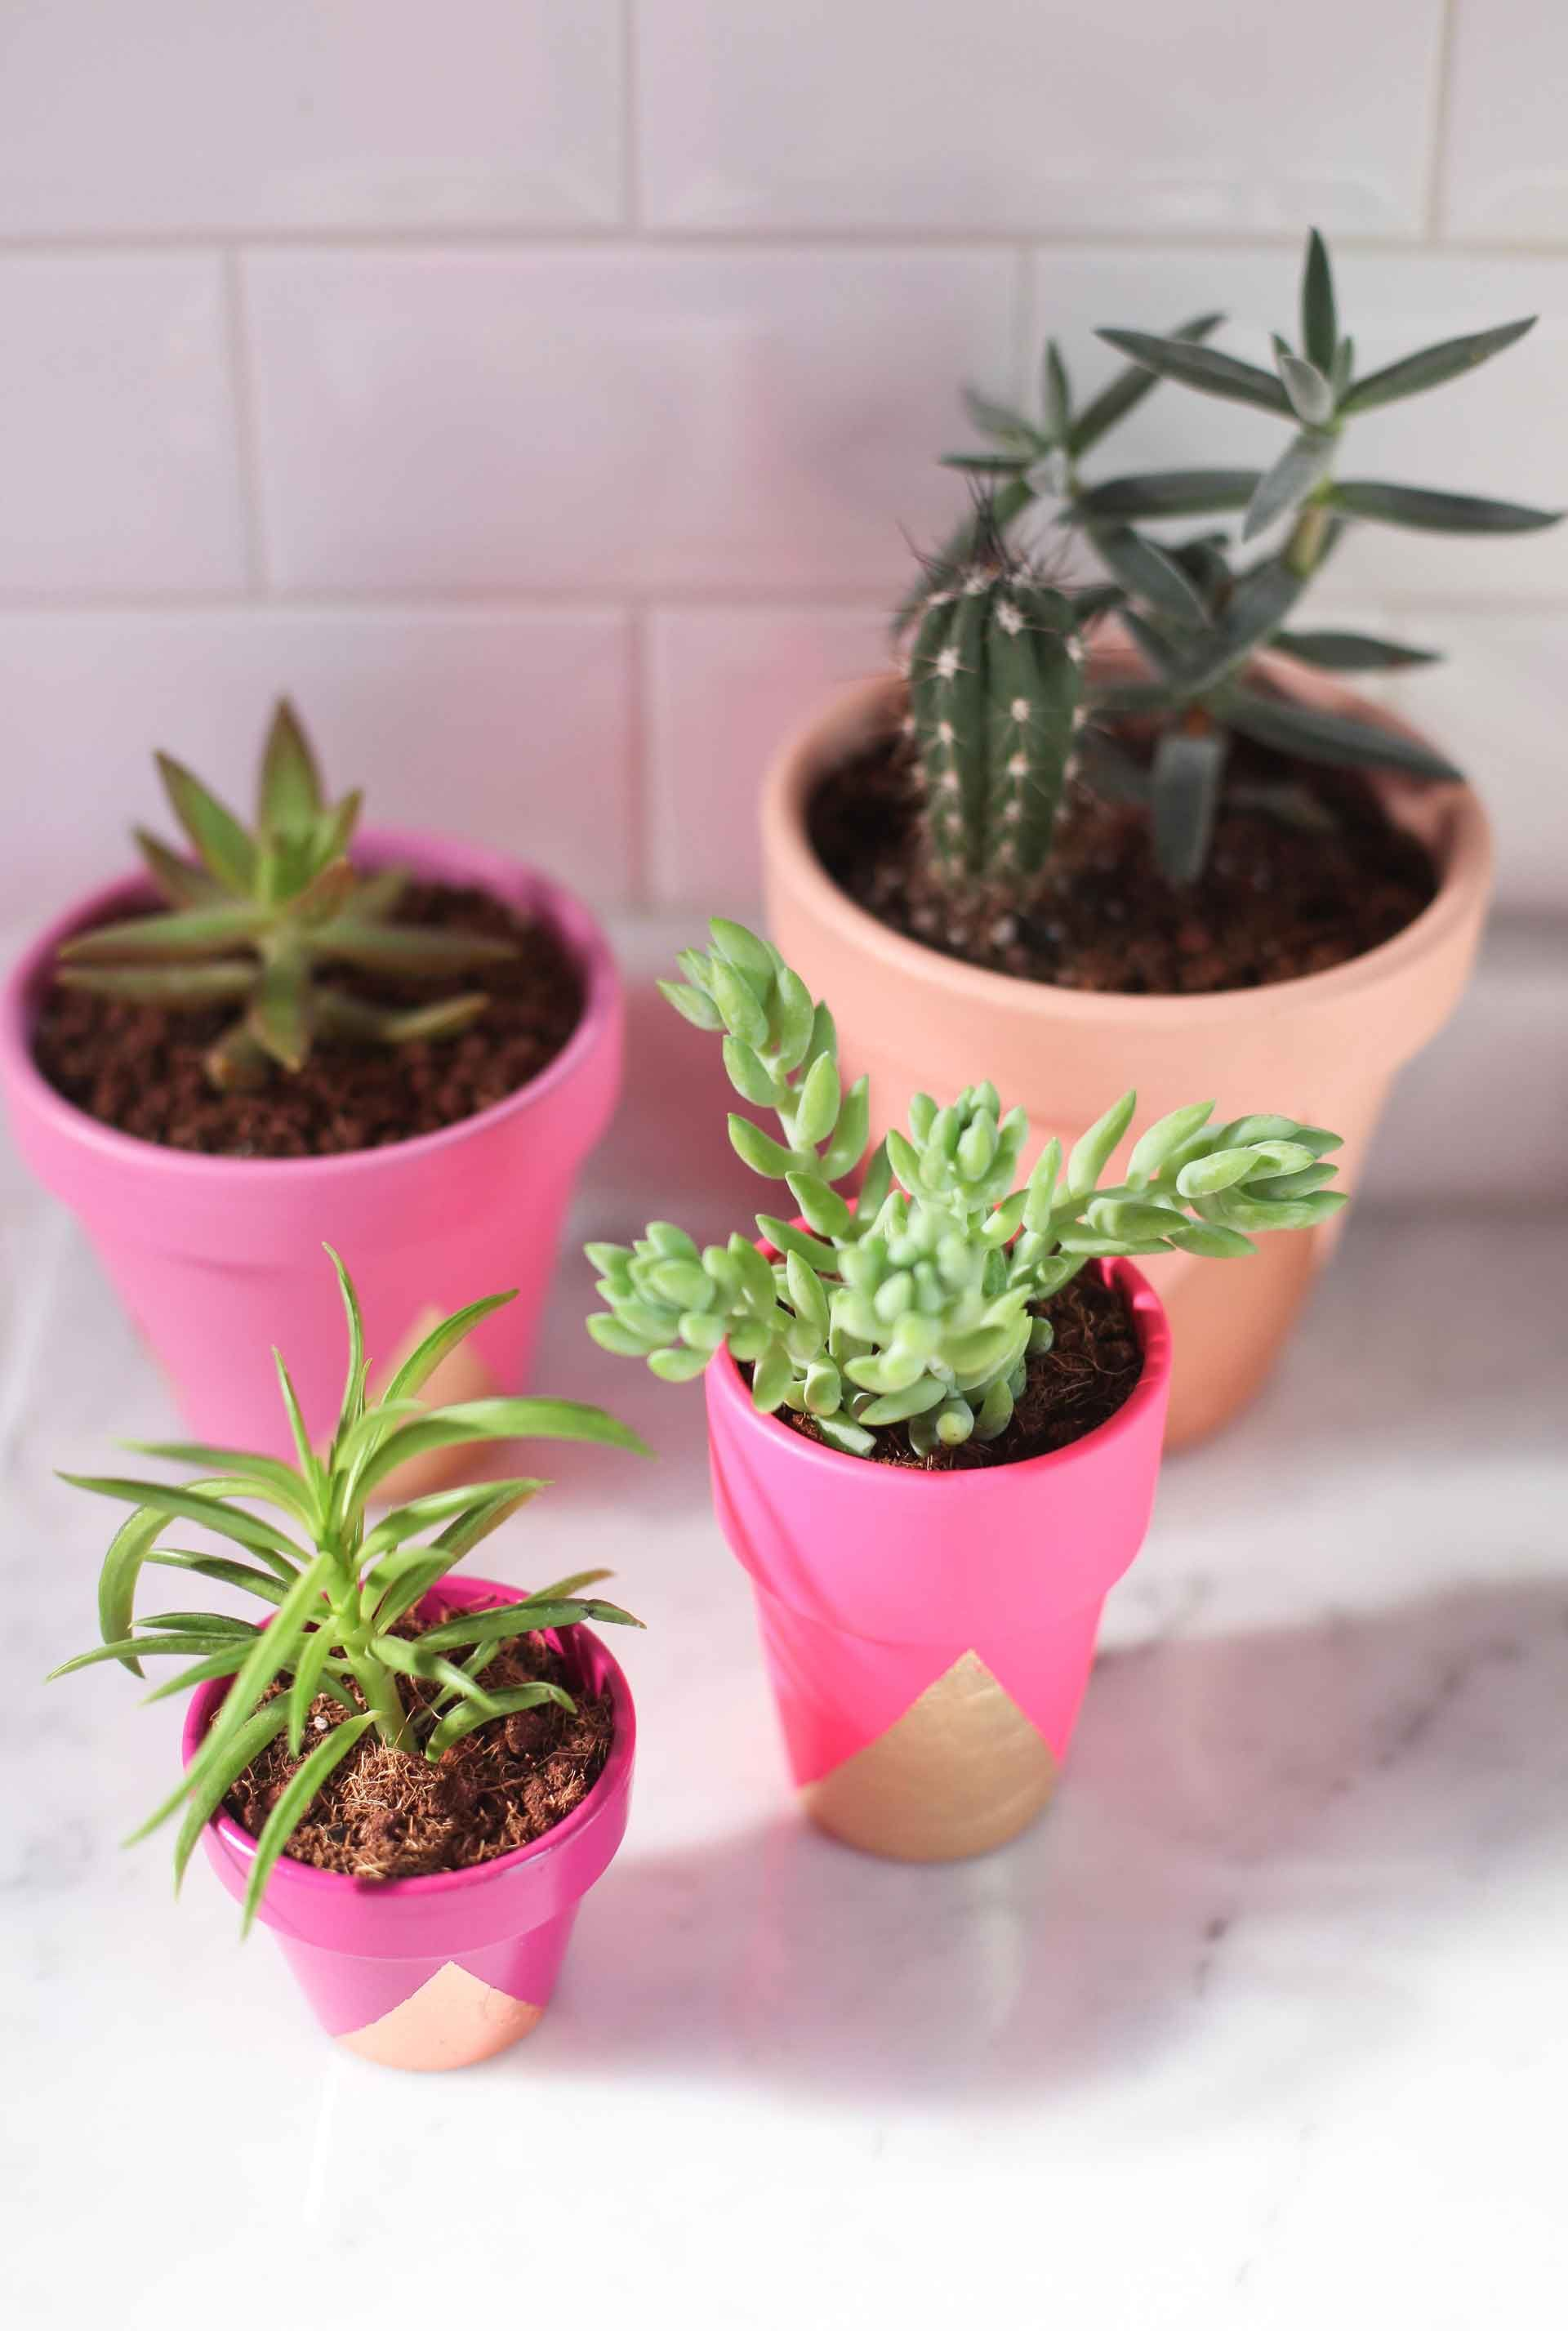 Diy Gold Leaf Succulent Plants (Honest Tip Use Non Toxic Paint)